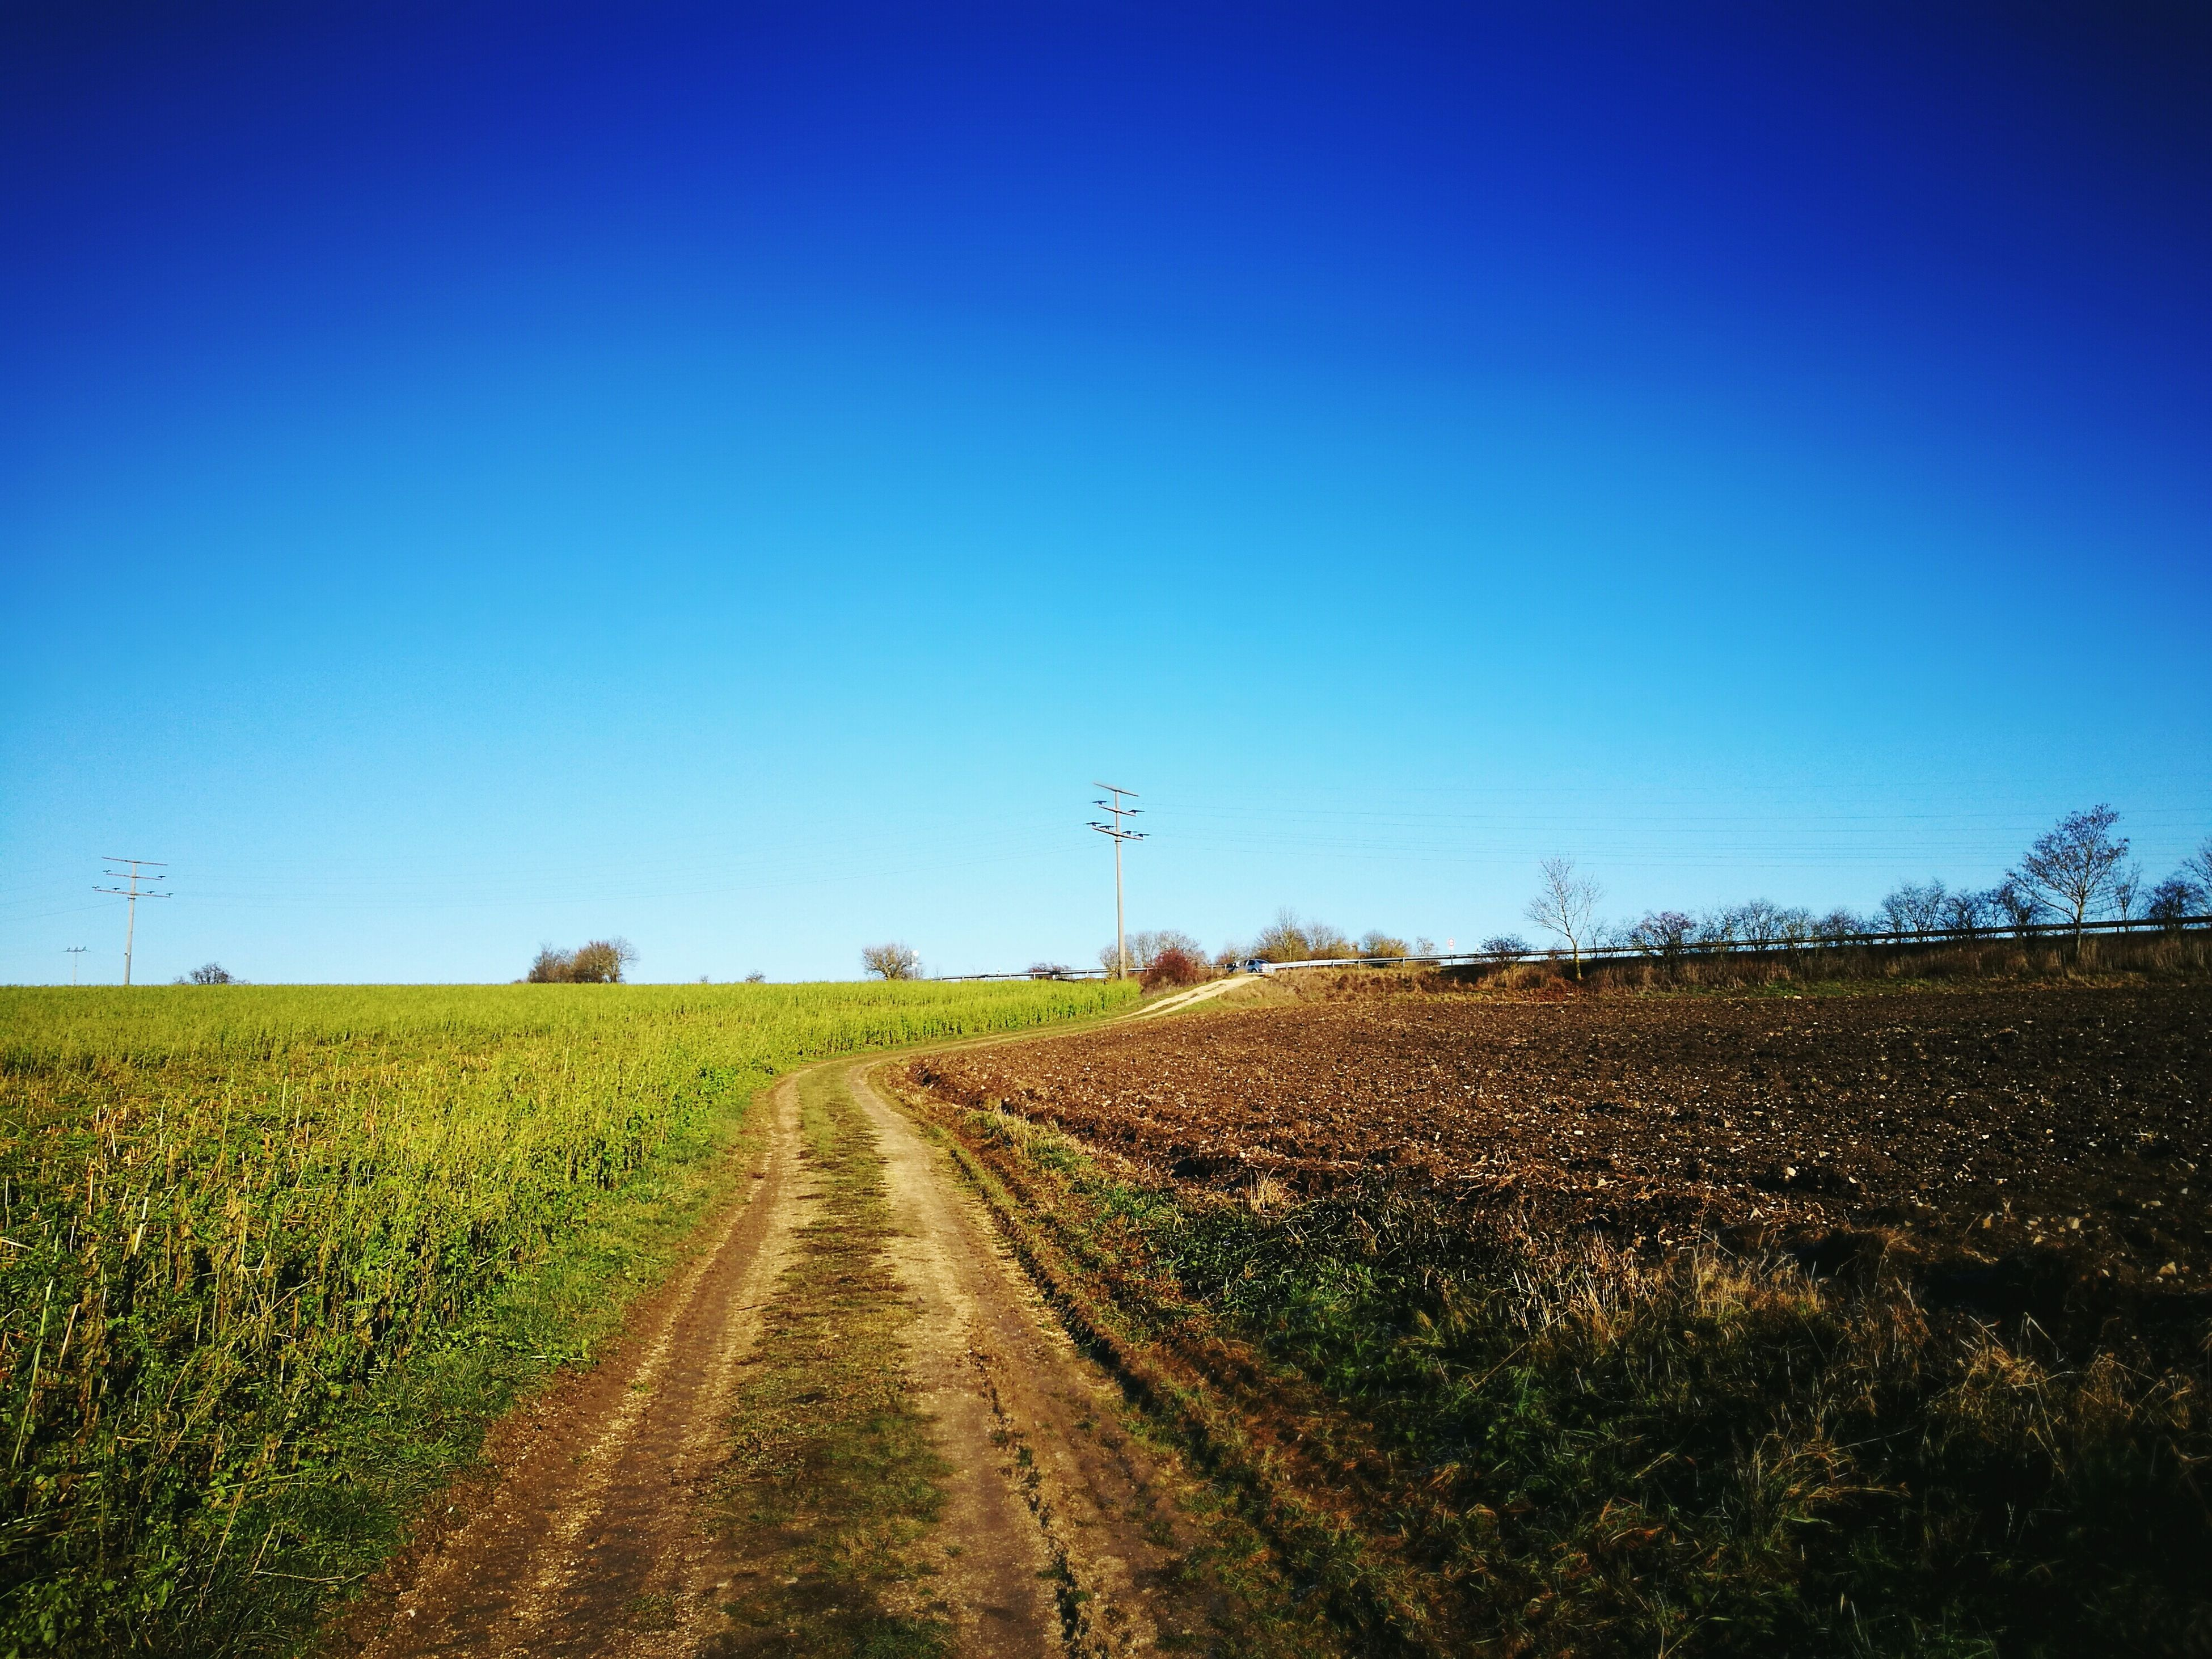 clear sky, agriculture, growth, blue, rural scene, day, nature, field, no people, plant, landscape, outdoors, tranquility, scenics, sky, beauty in nature